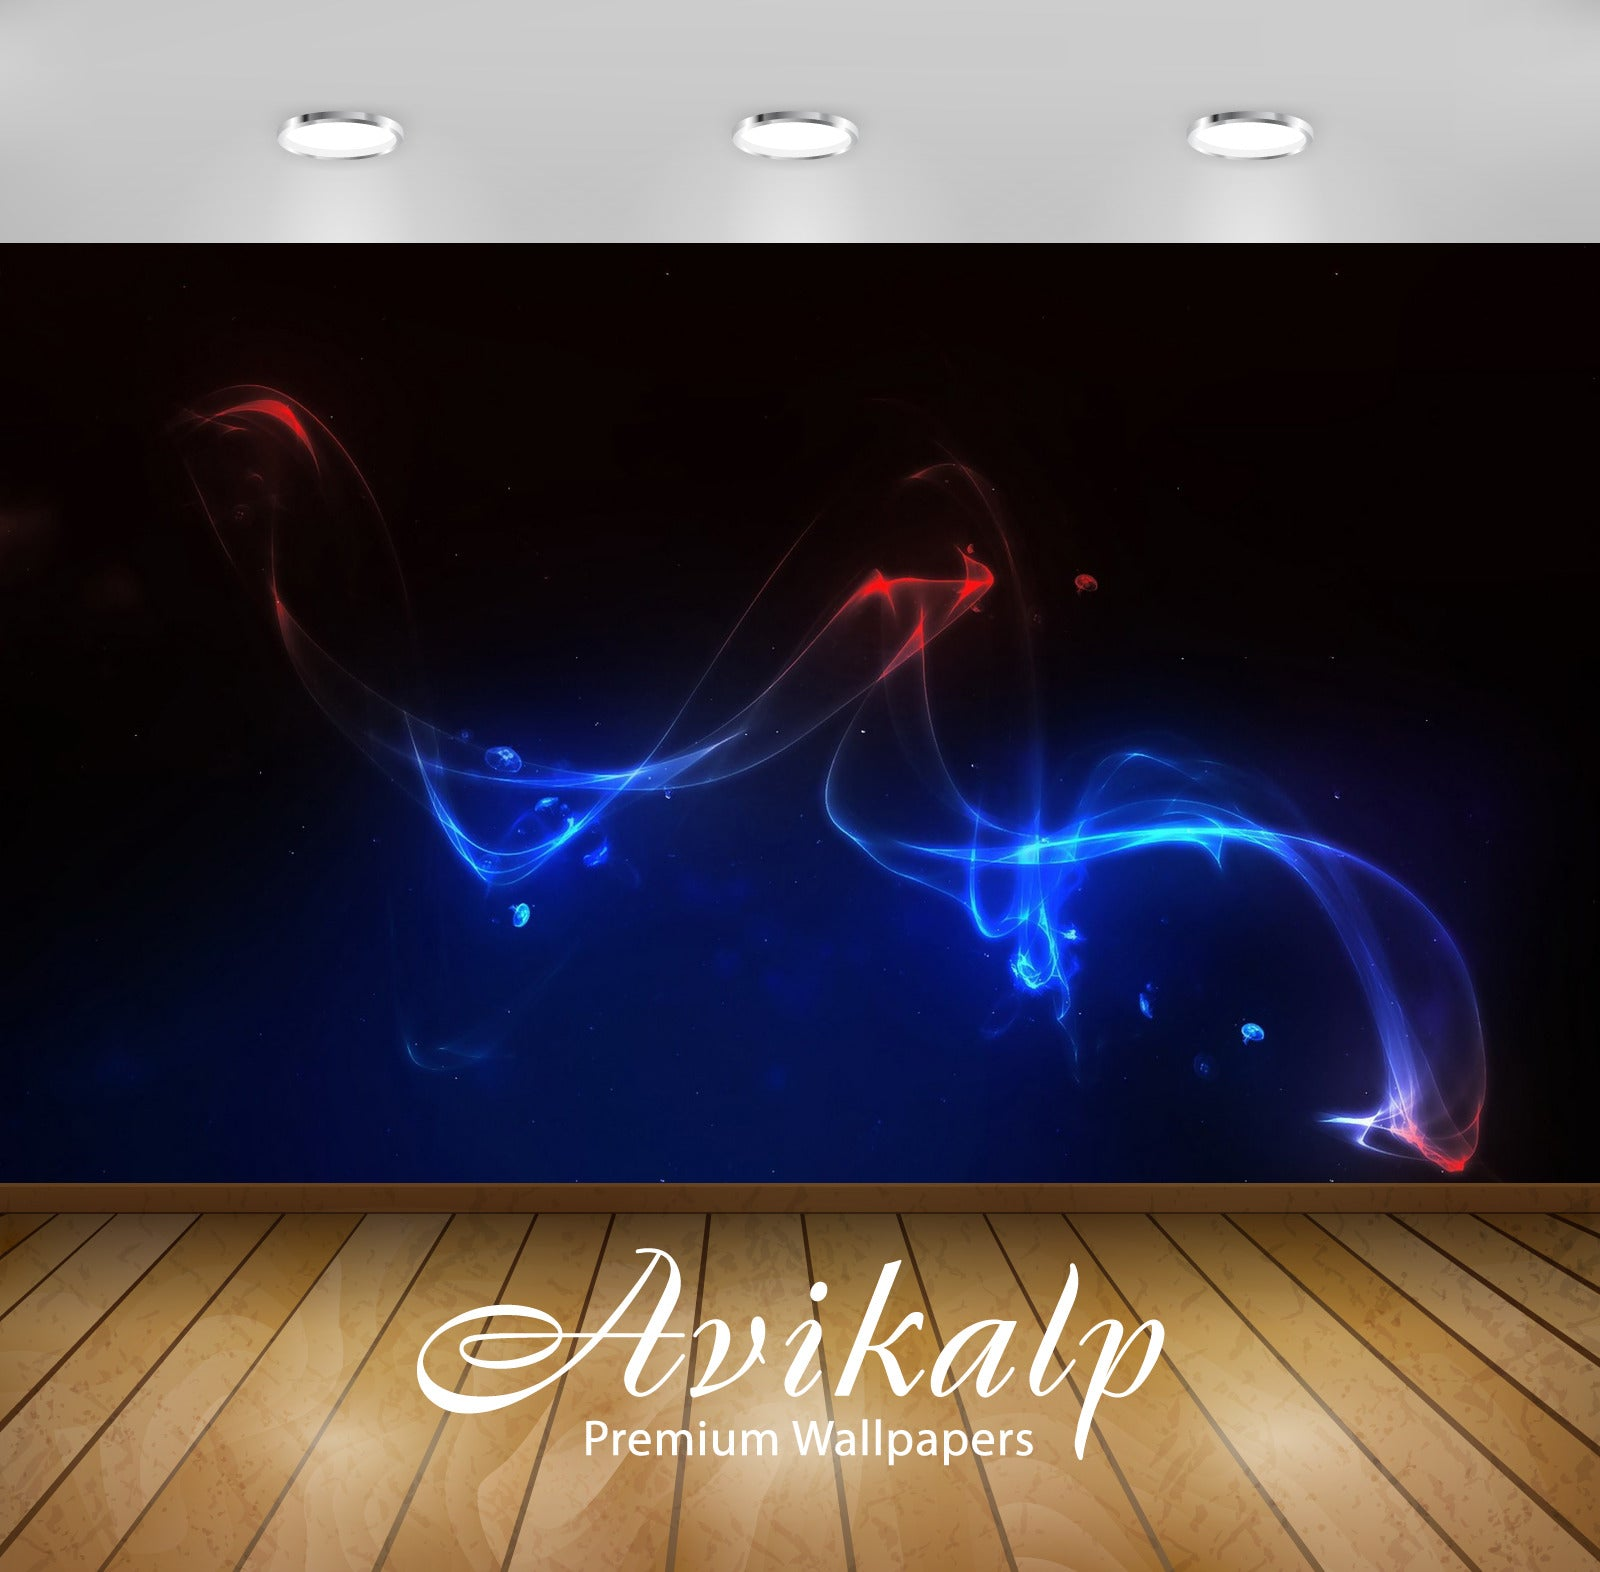 Avikalp Exclusive Awi4332 Fluorescent Smoke Full HD Wallpapers for Living room, Hall, Kids Room, Kit